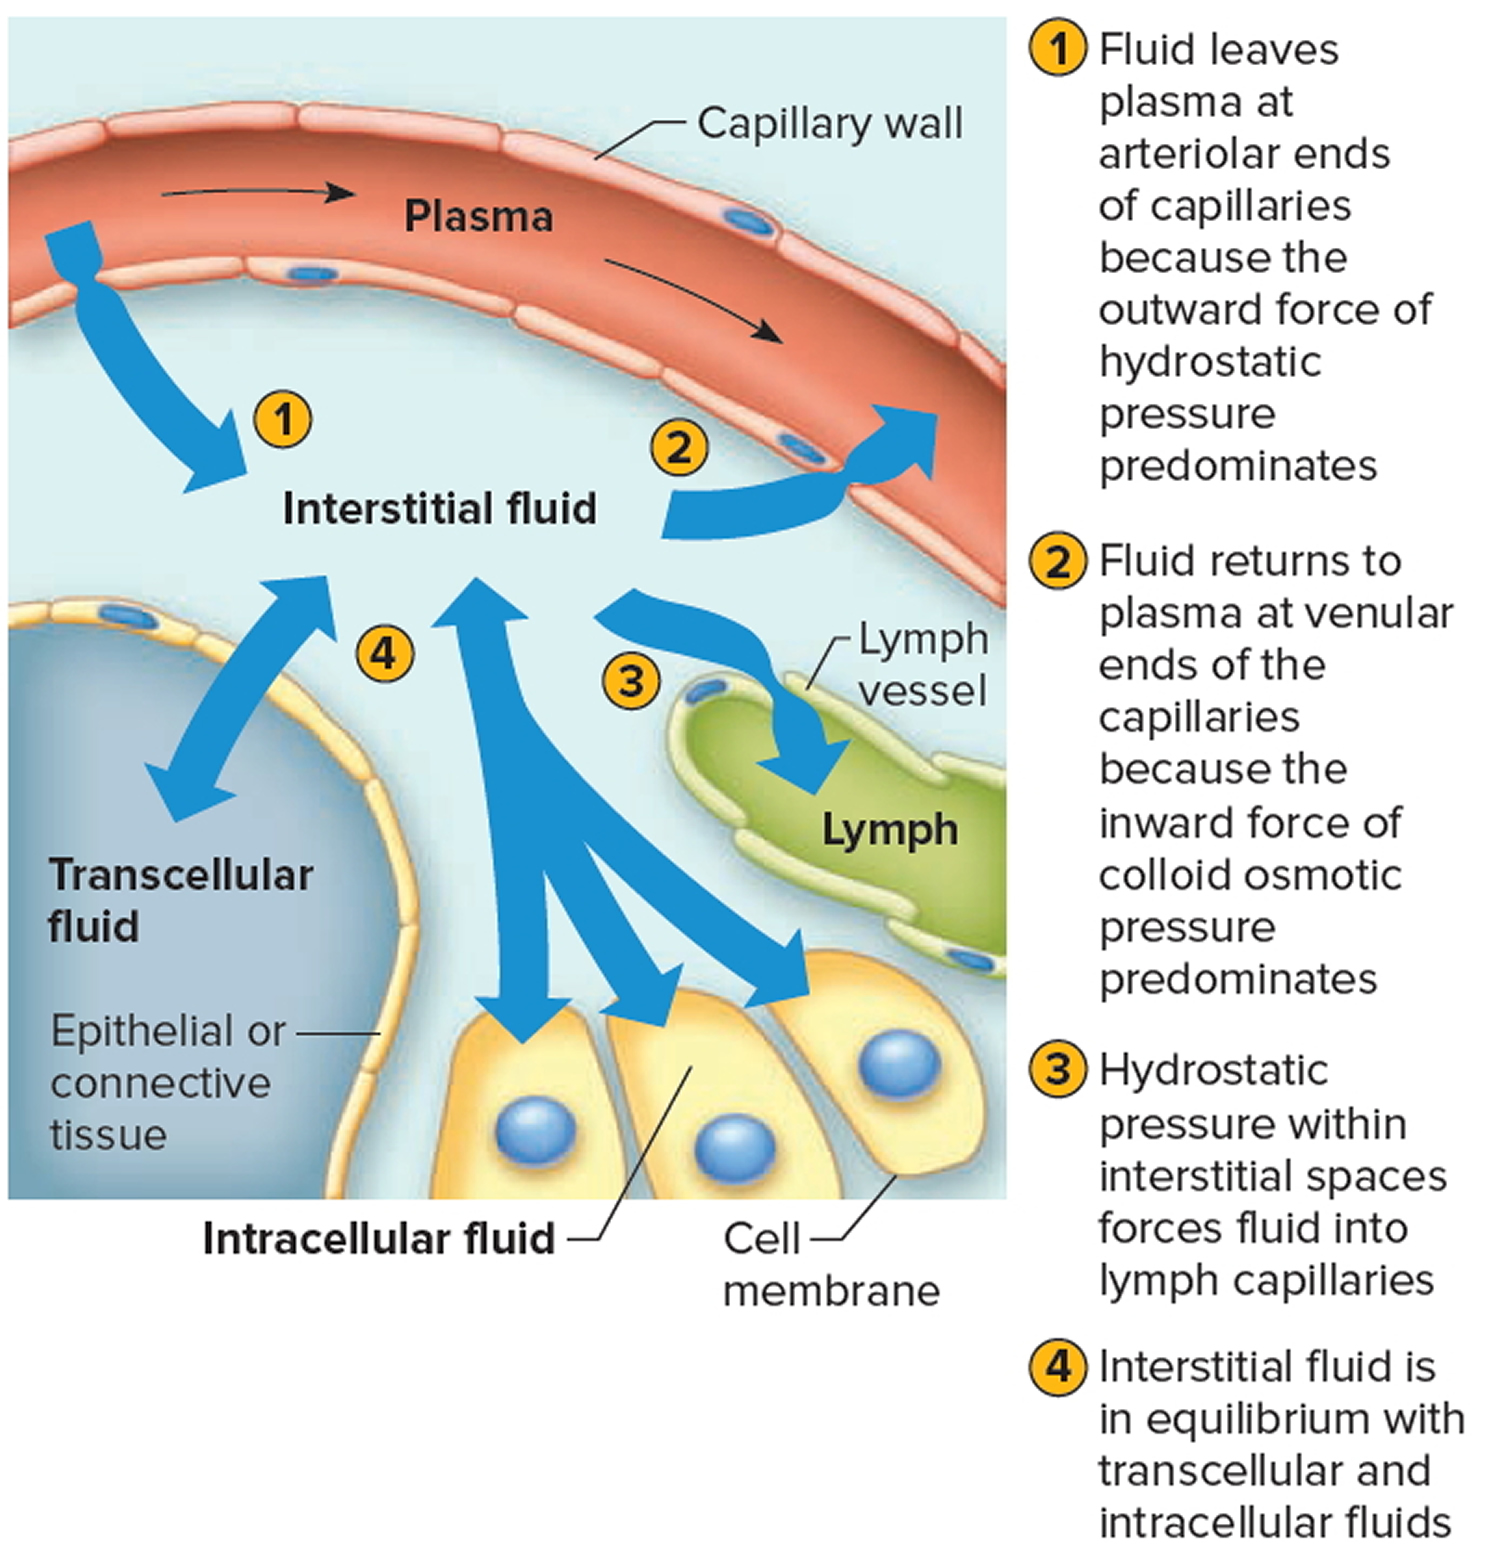 movement of fluid between intracellular and extracellular space